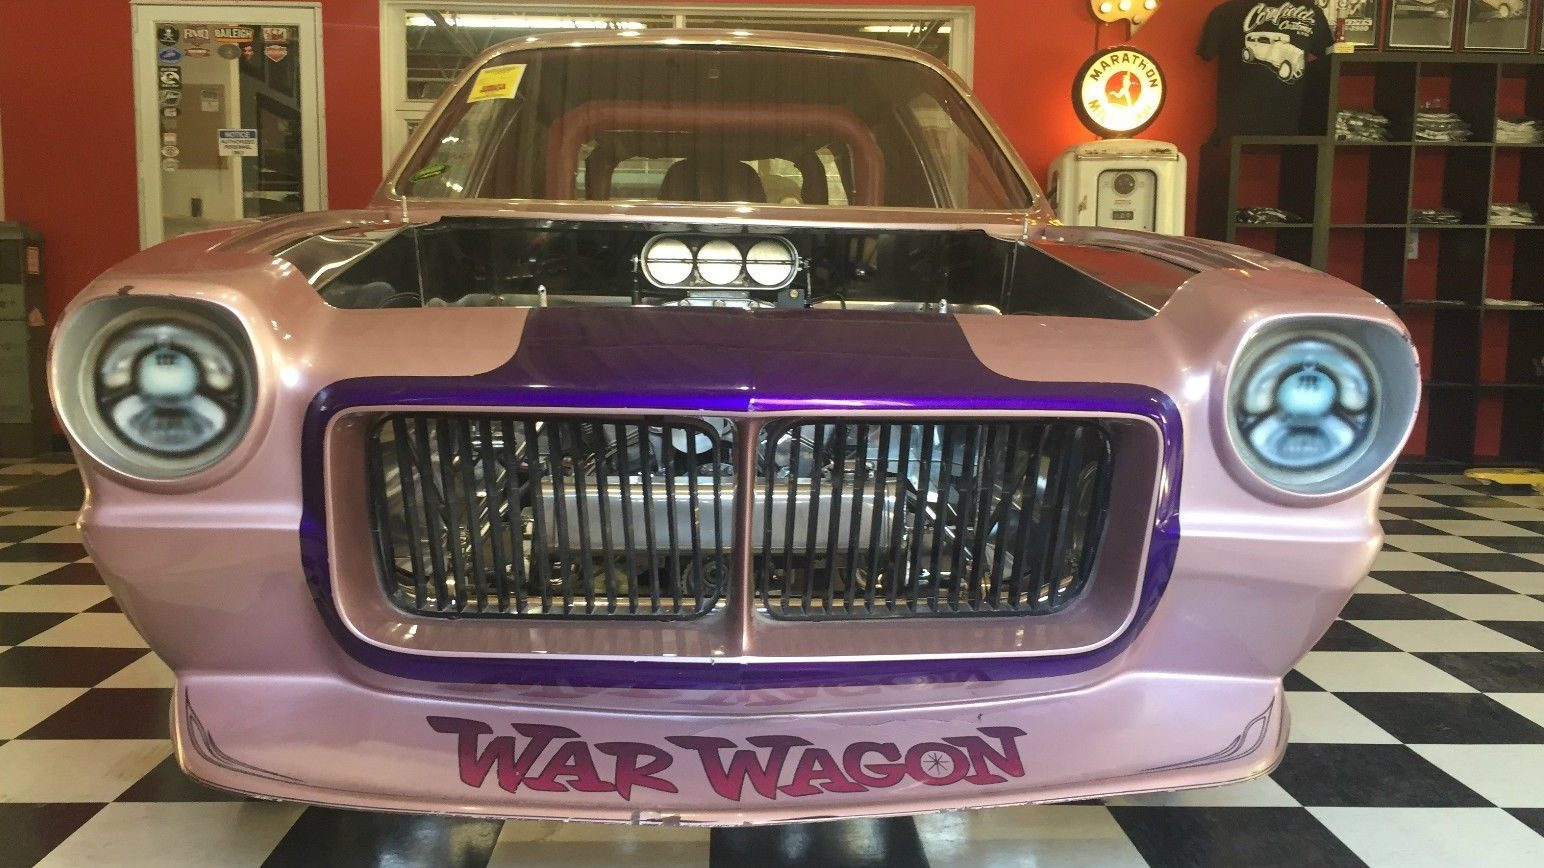 Old Chevy Cars >> The War Wagon: Vega Funny Car